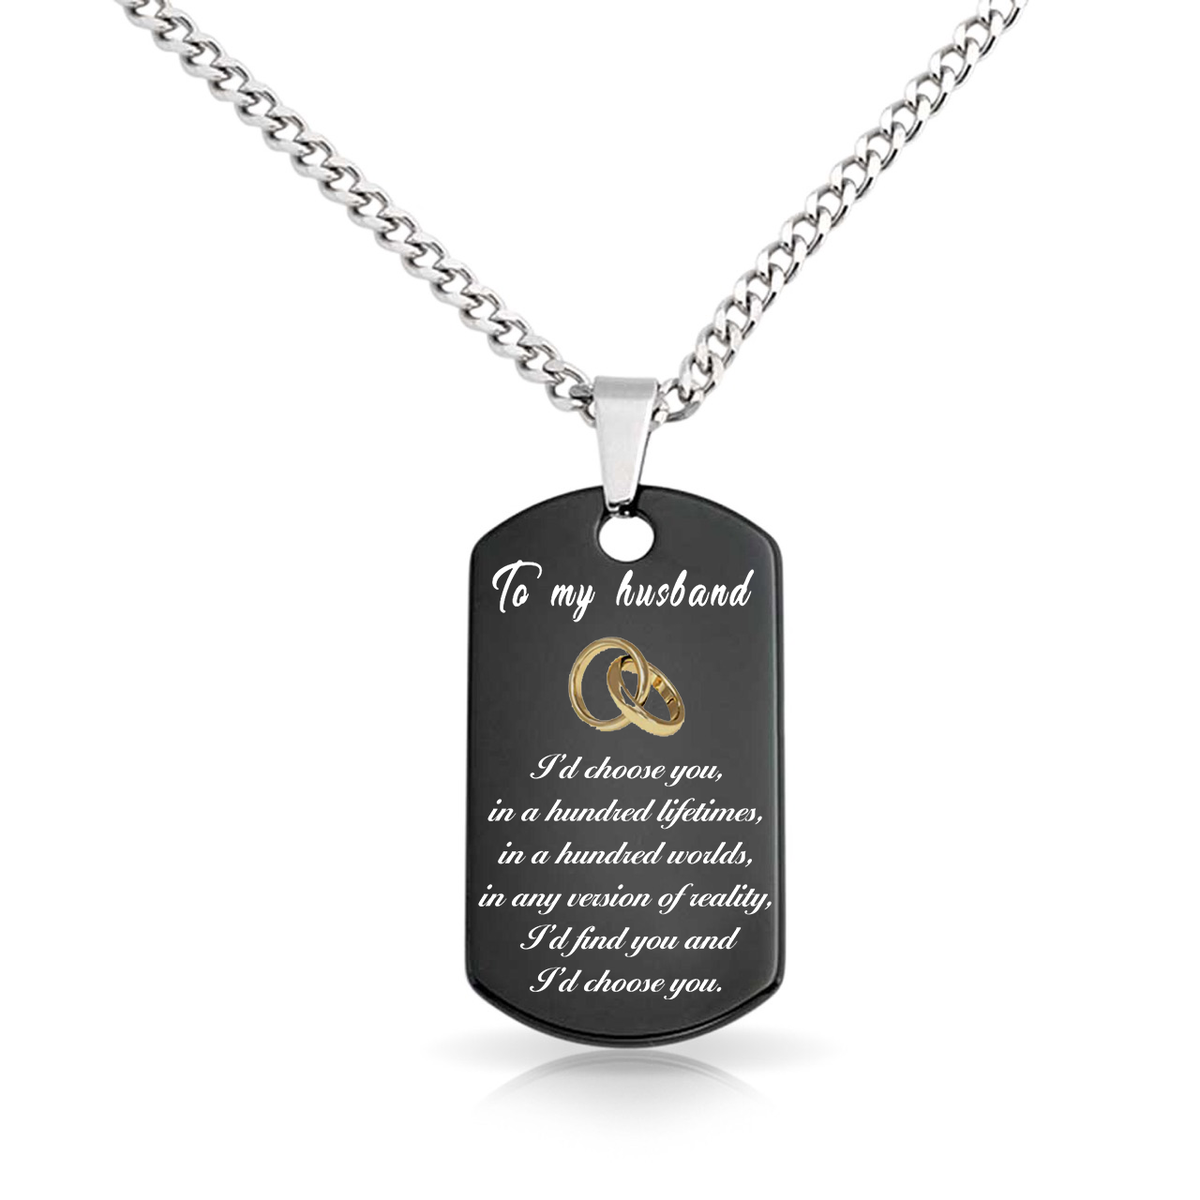 efe567f12b Exclusive To My Husband Dogtag Necklace. Not Sold in Stores - Trend City